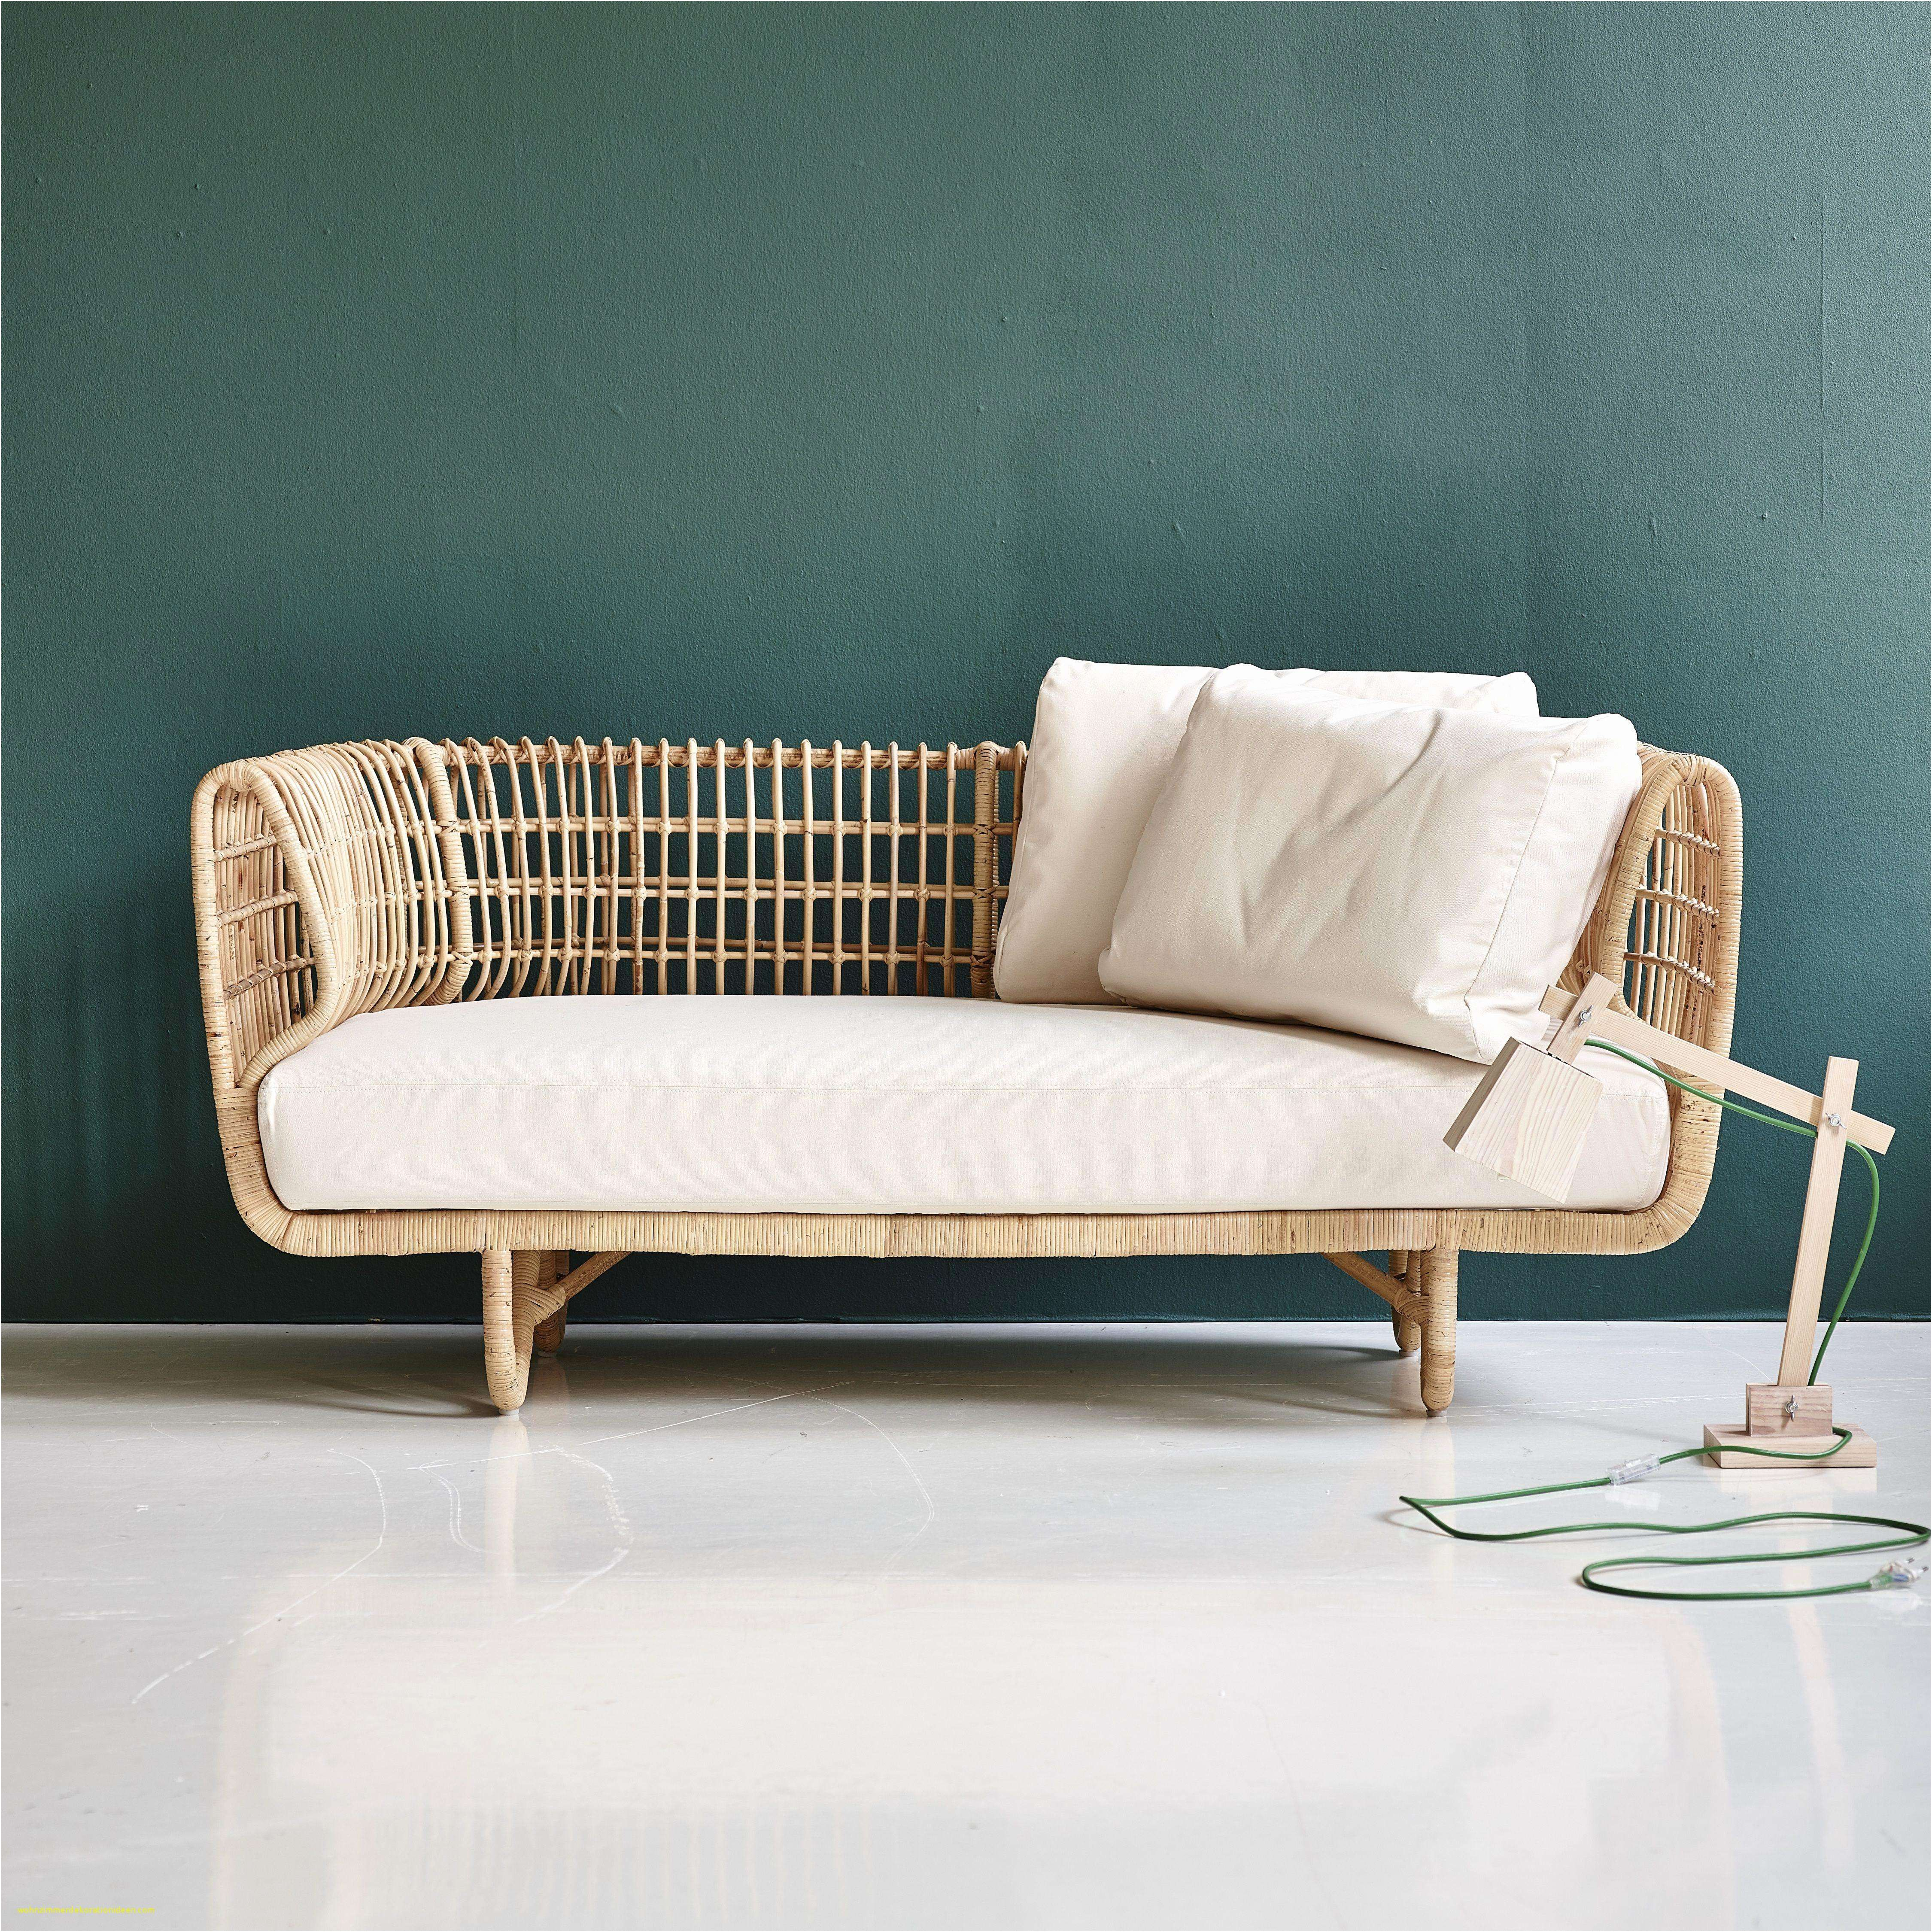 Ebay Sofa Kaufen Quoet Sofa Kaufen Ebay | Rattan Furniture Living Room, Vintage Rattan Furniture, Outdoor Daybed